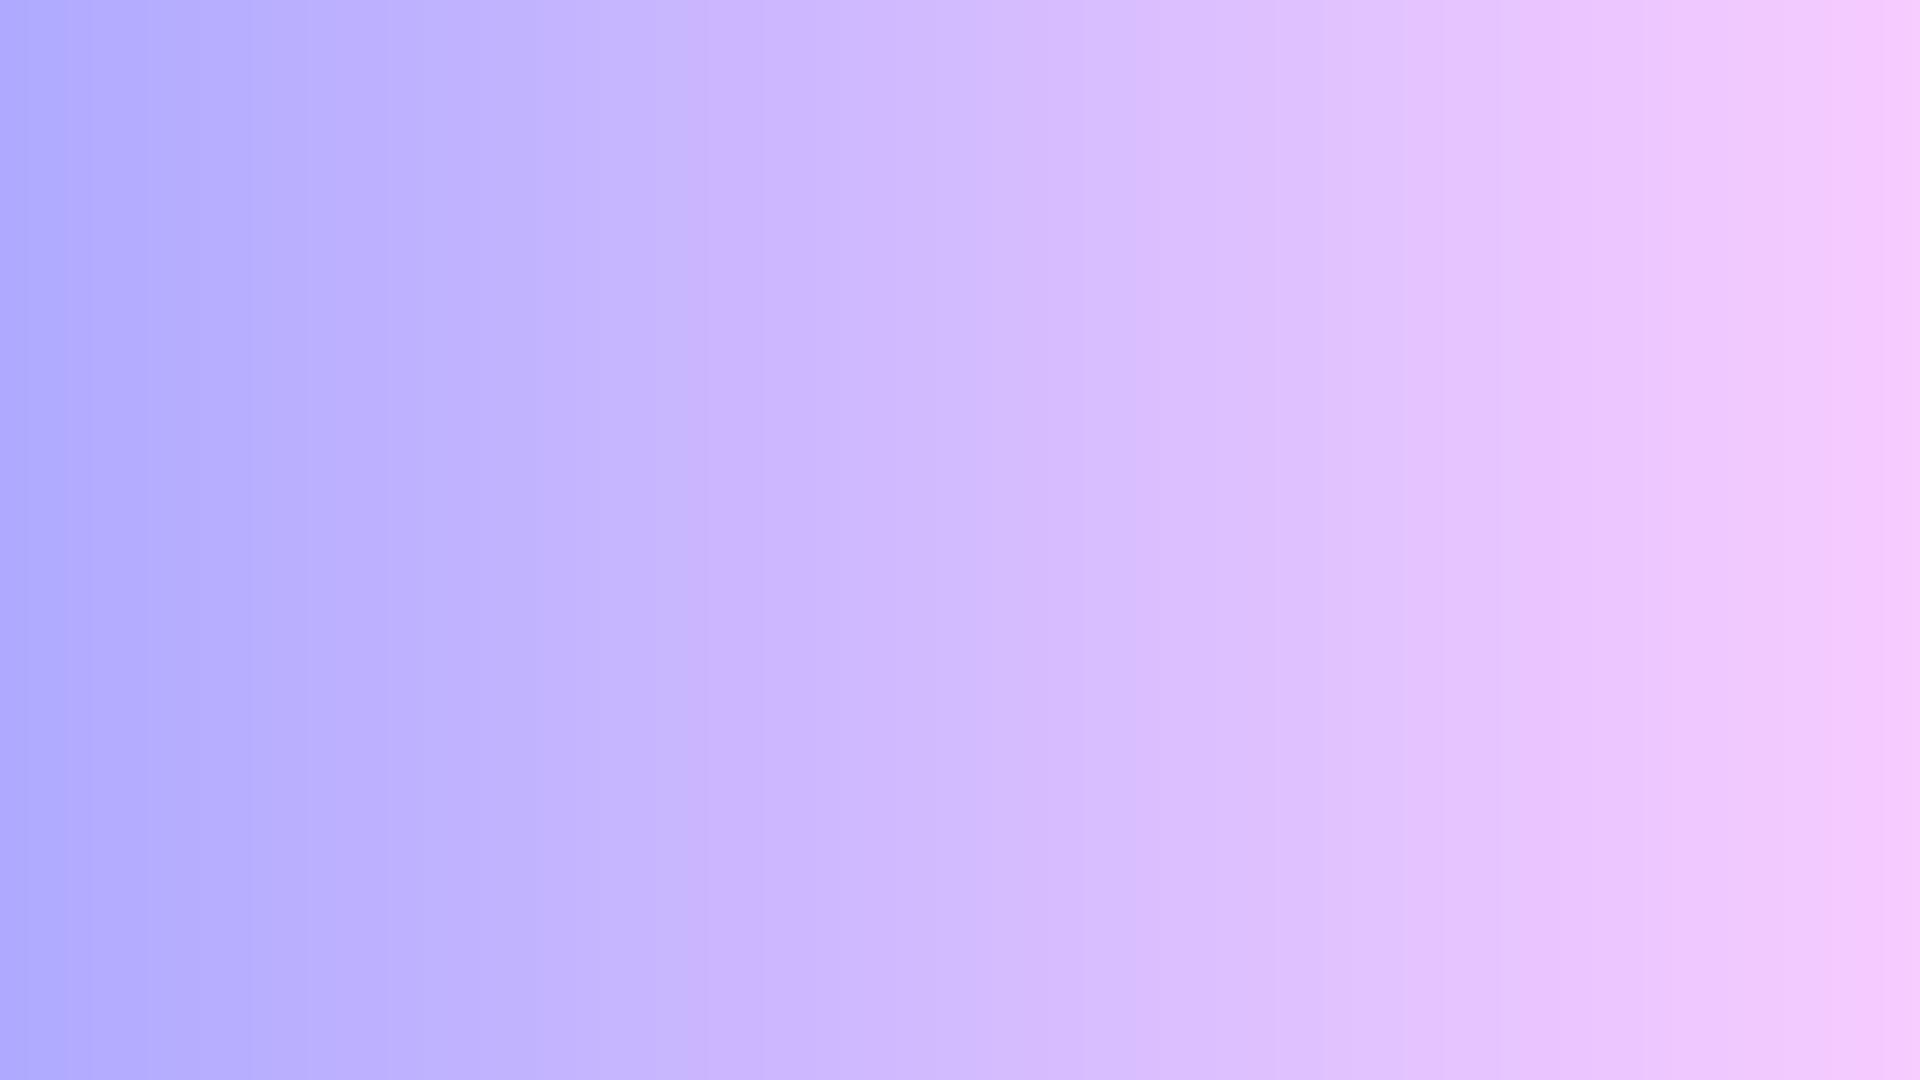 Light Purple Gradient Gradient